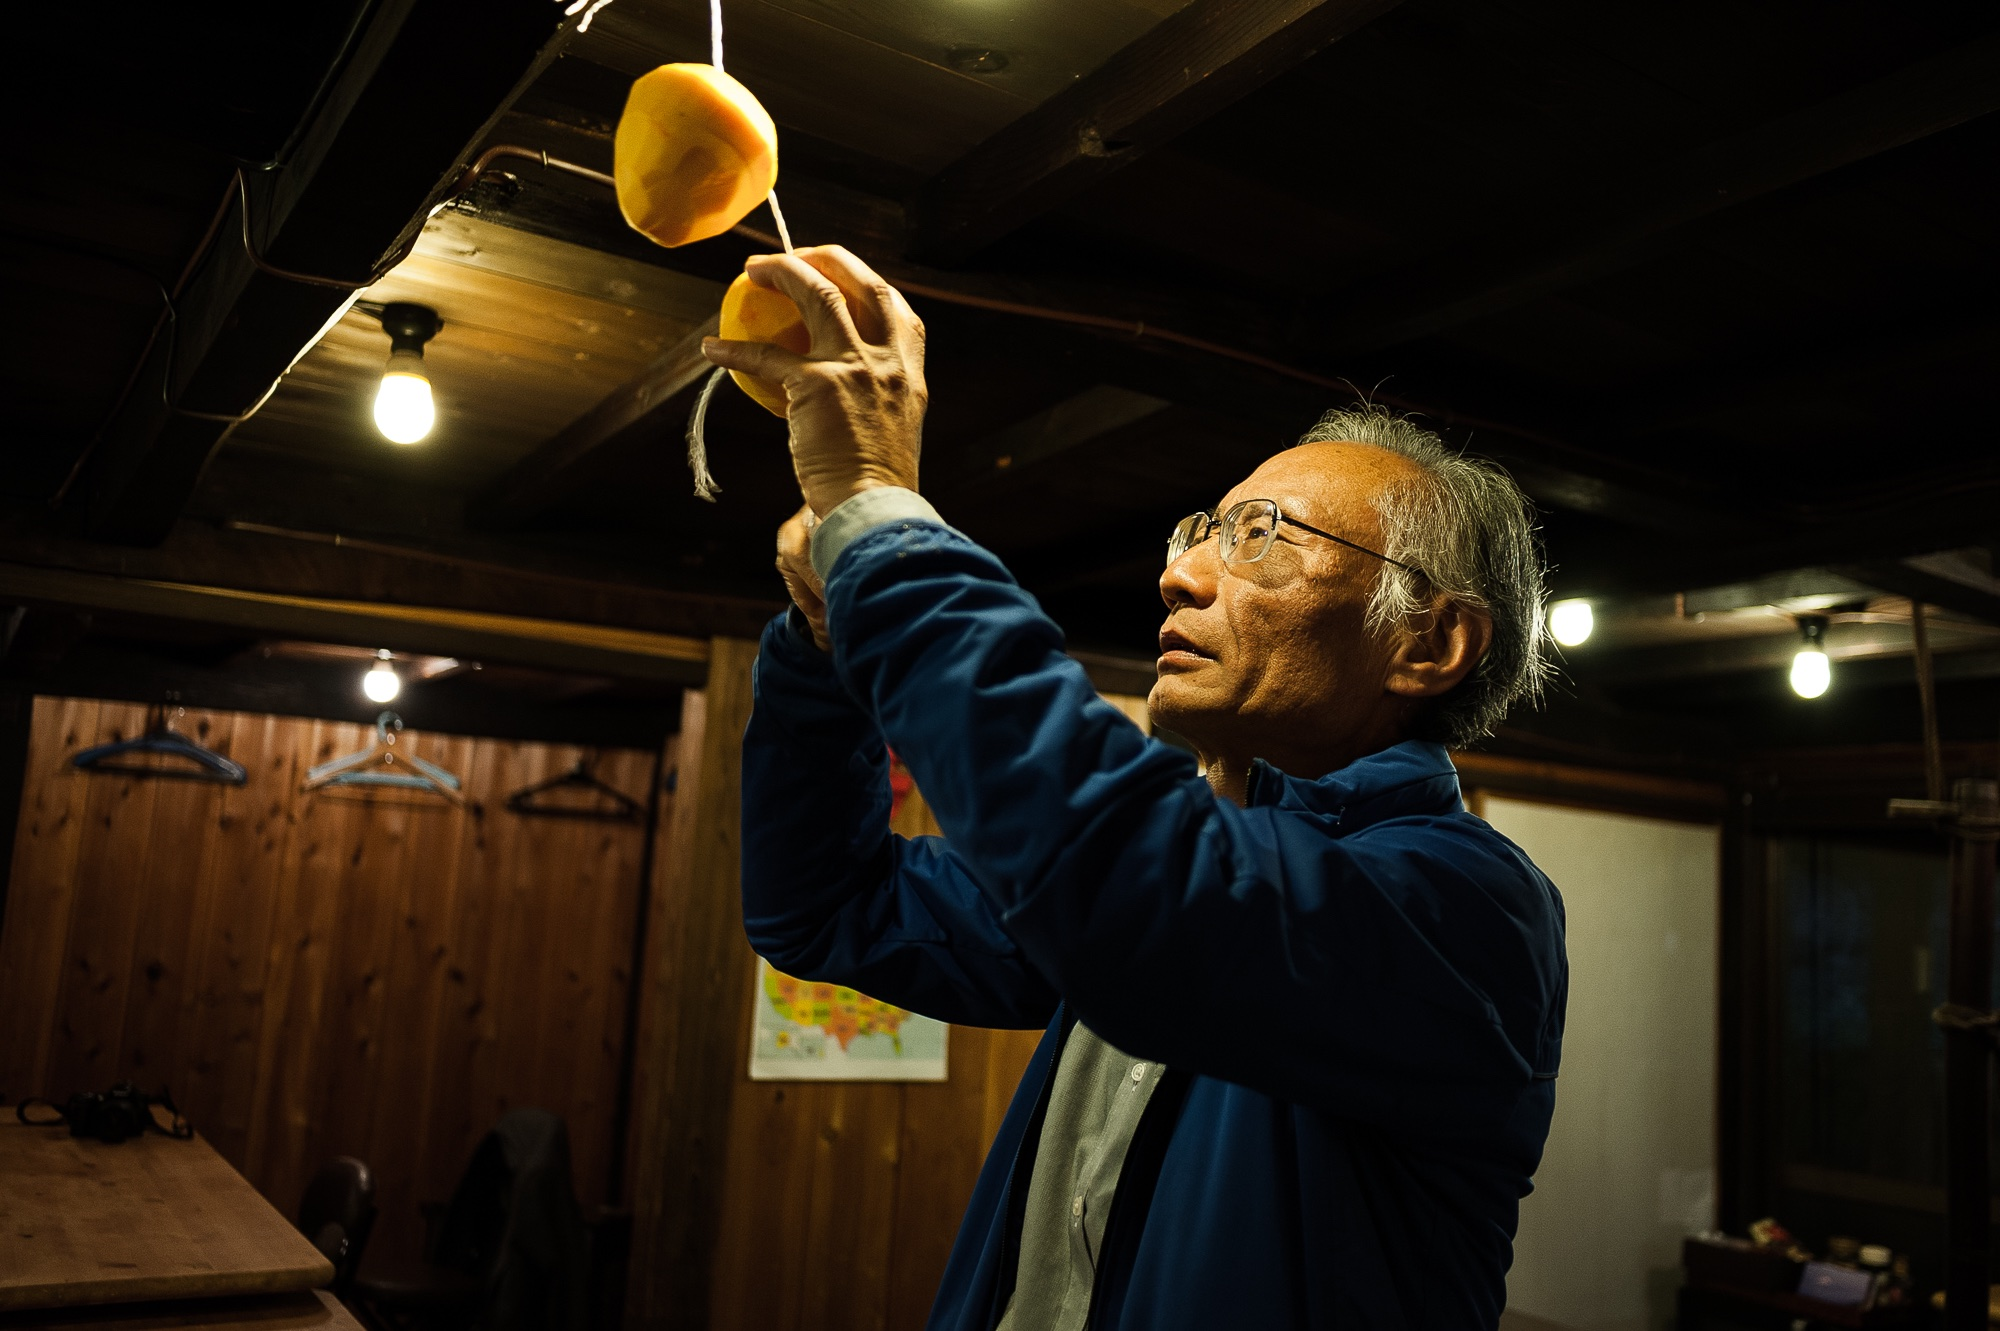 Within the community building, a local man hangs persimmons to dry on string